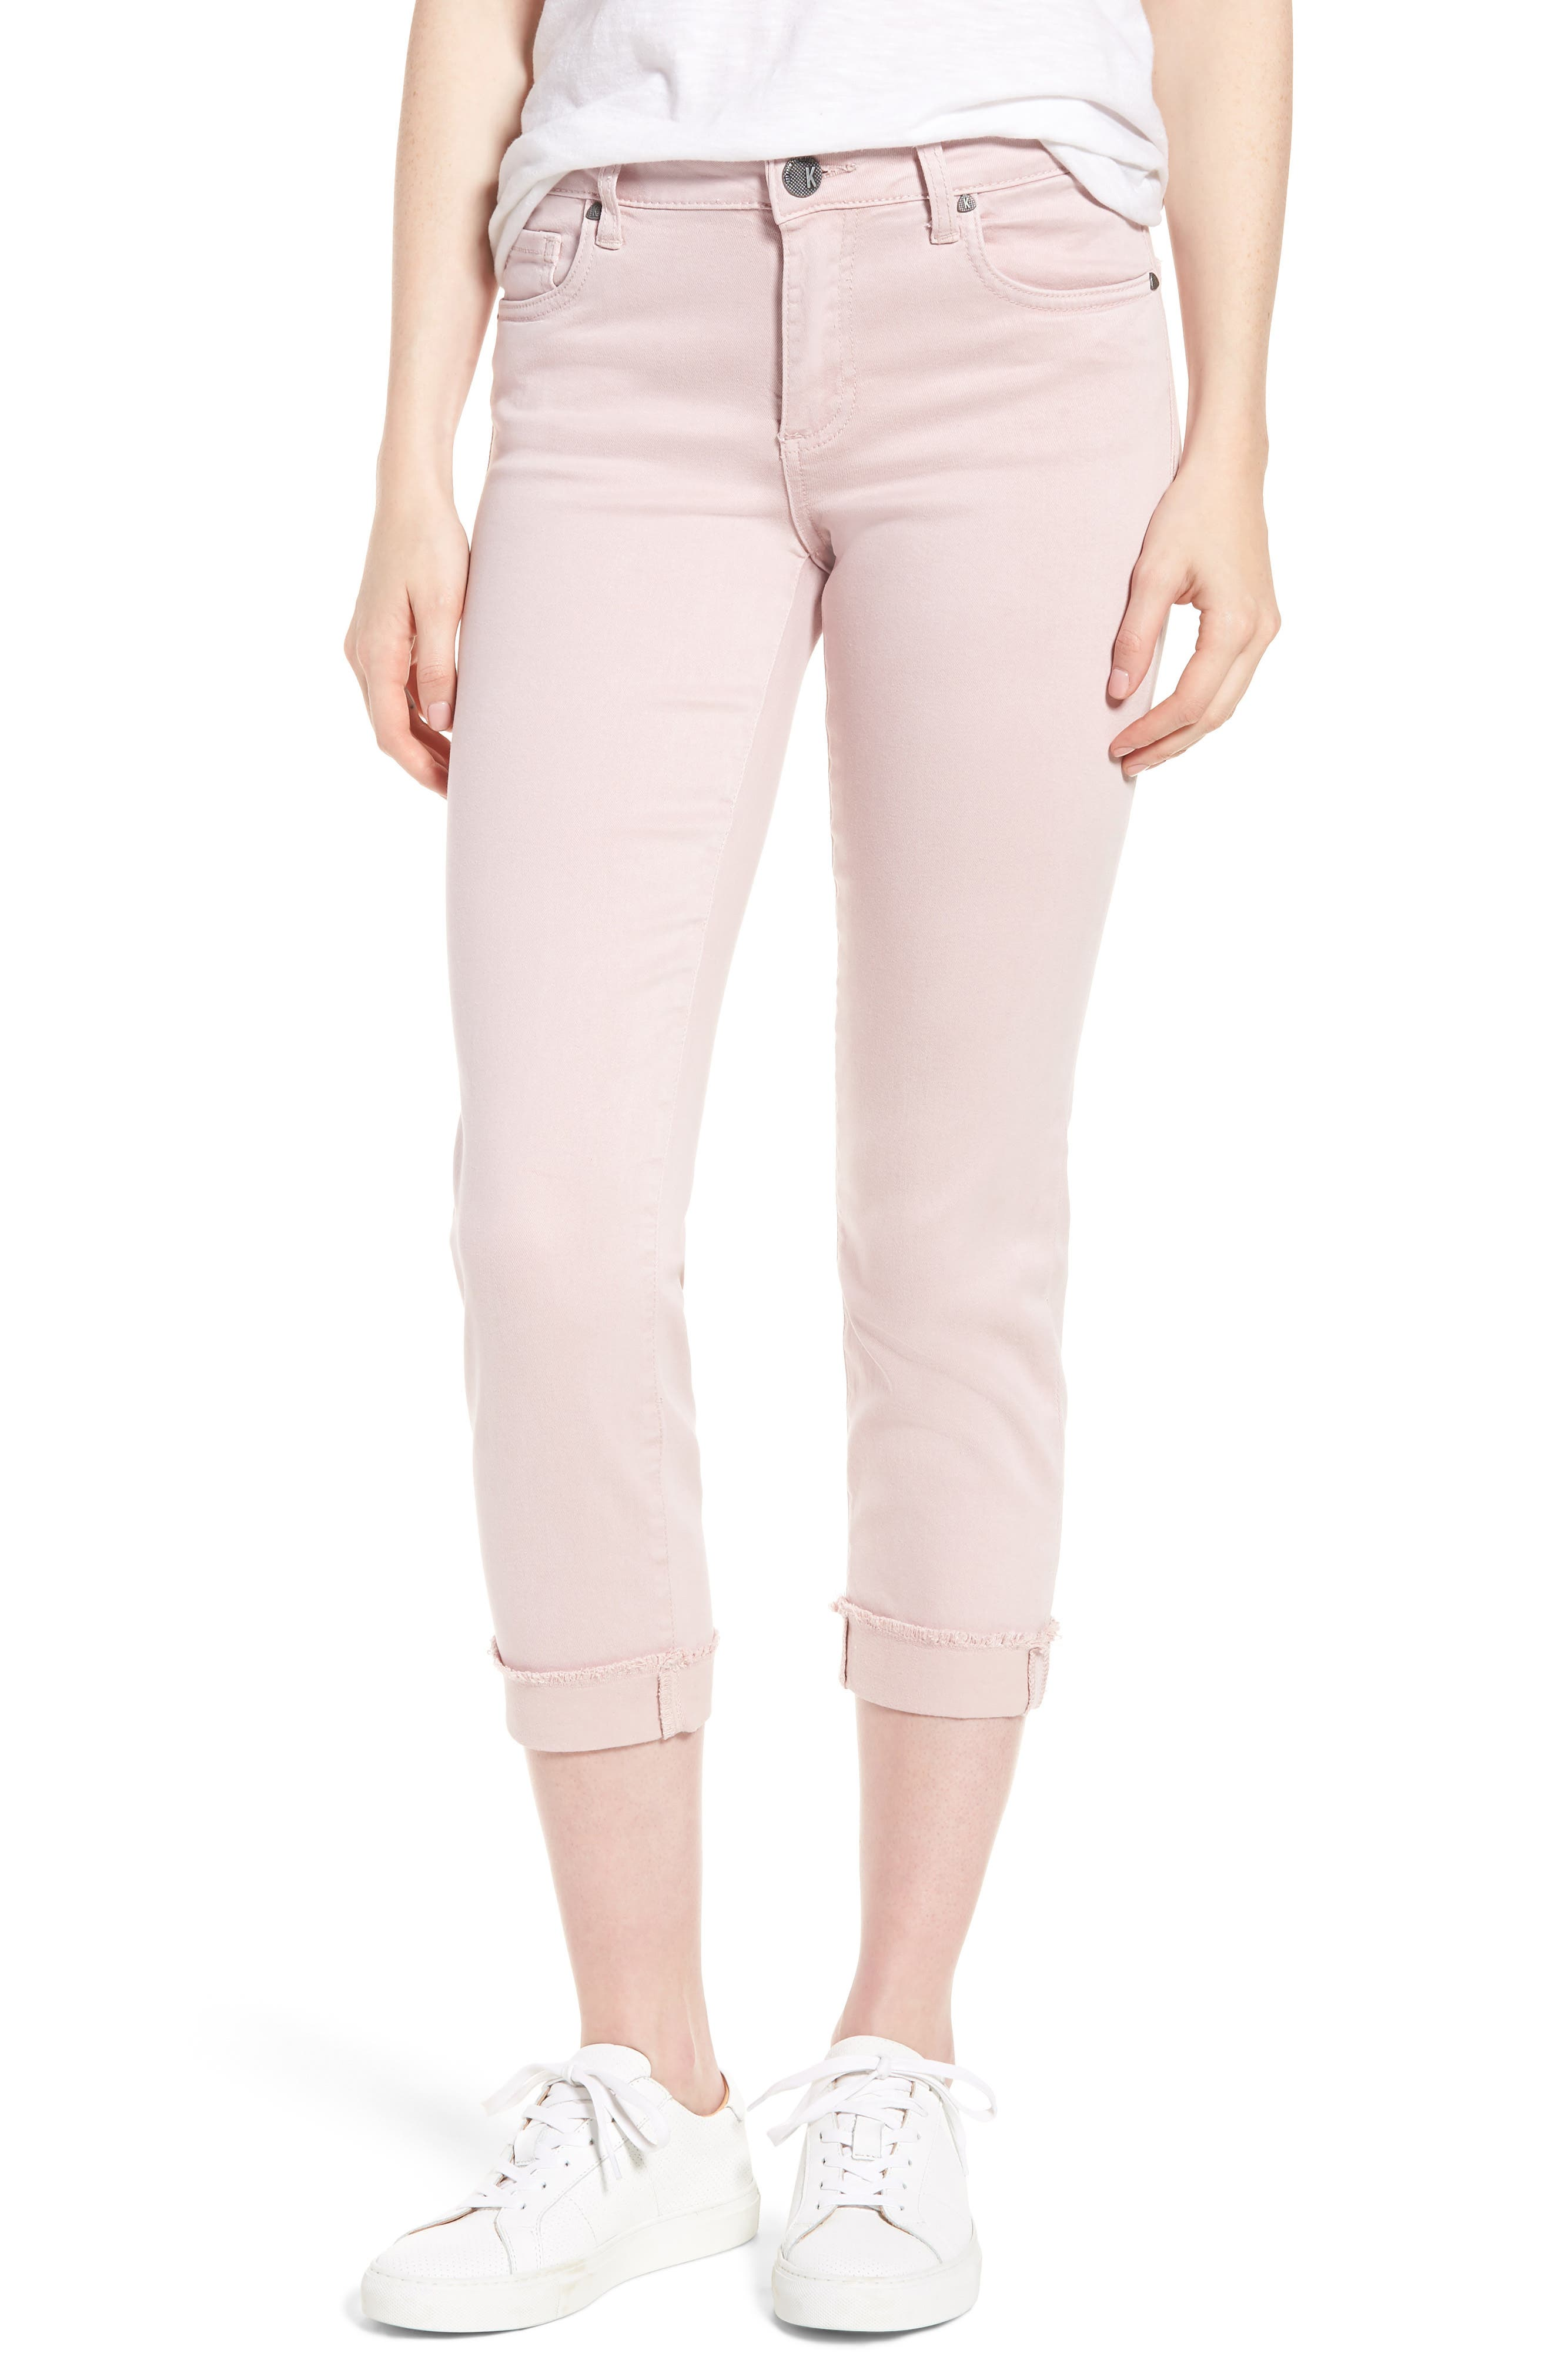 KUT from the Kloth Amy Crop Skinny Jeans,                             Main thumbnail 1, color,                             682